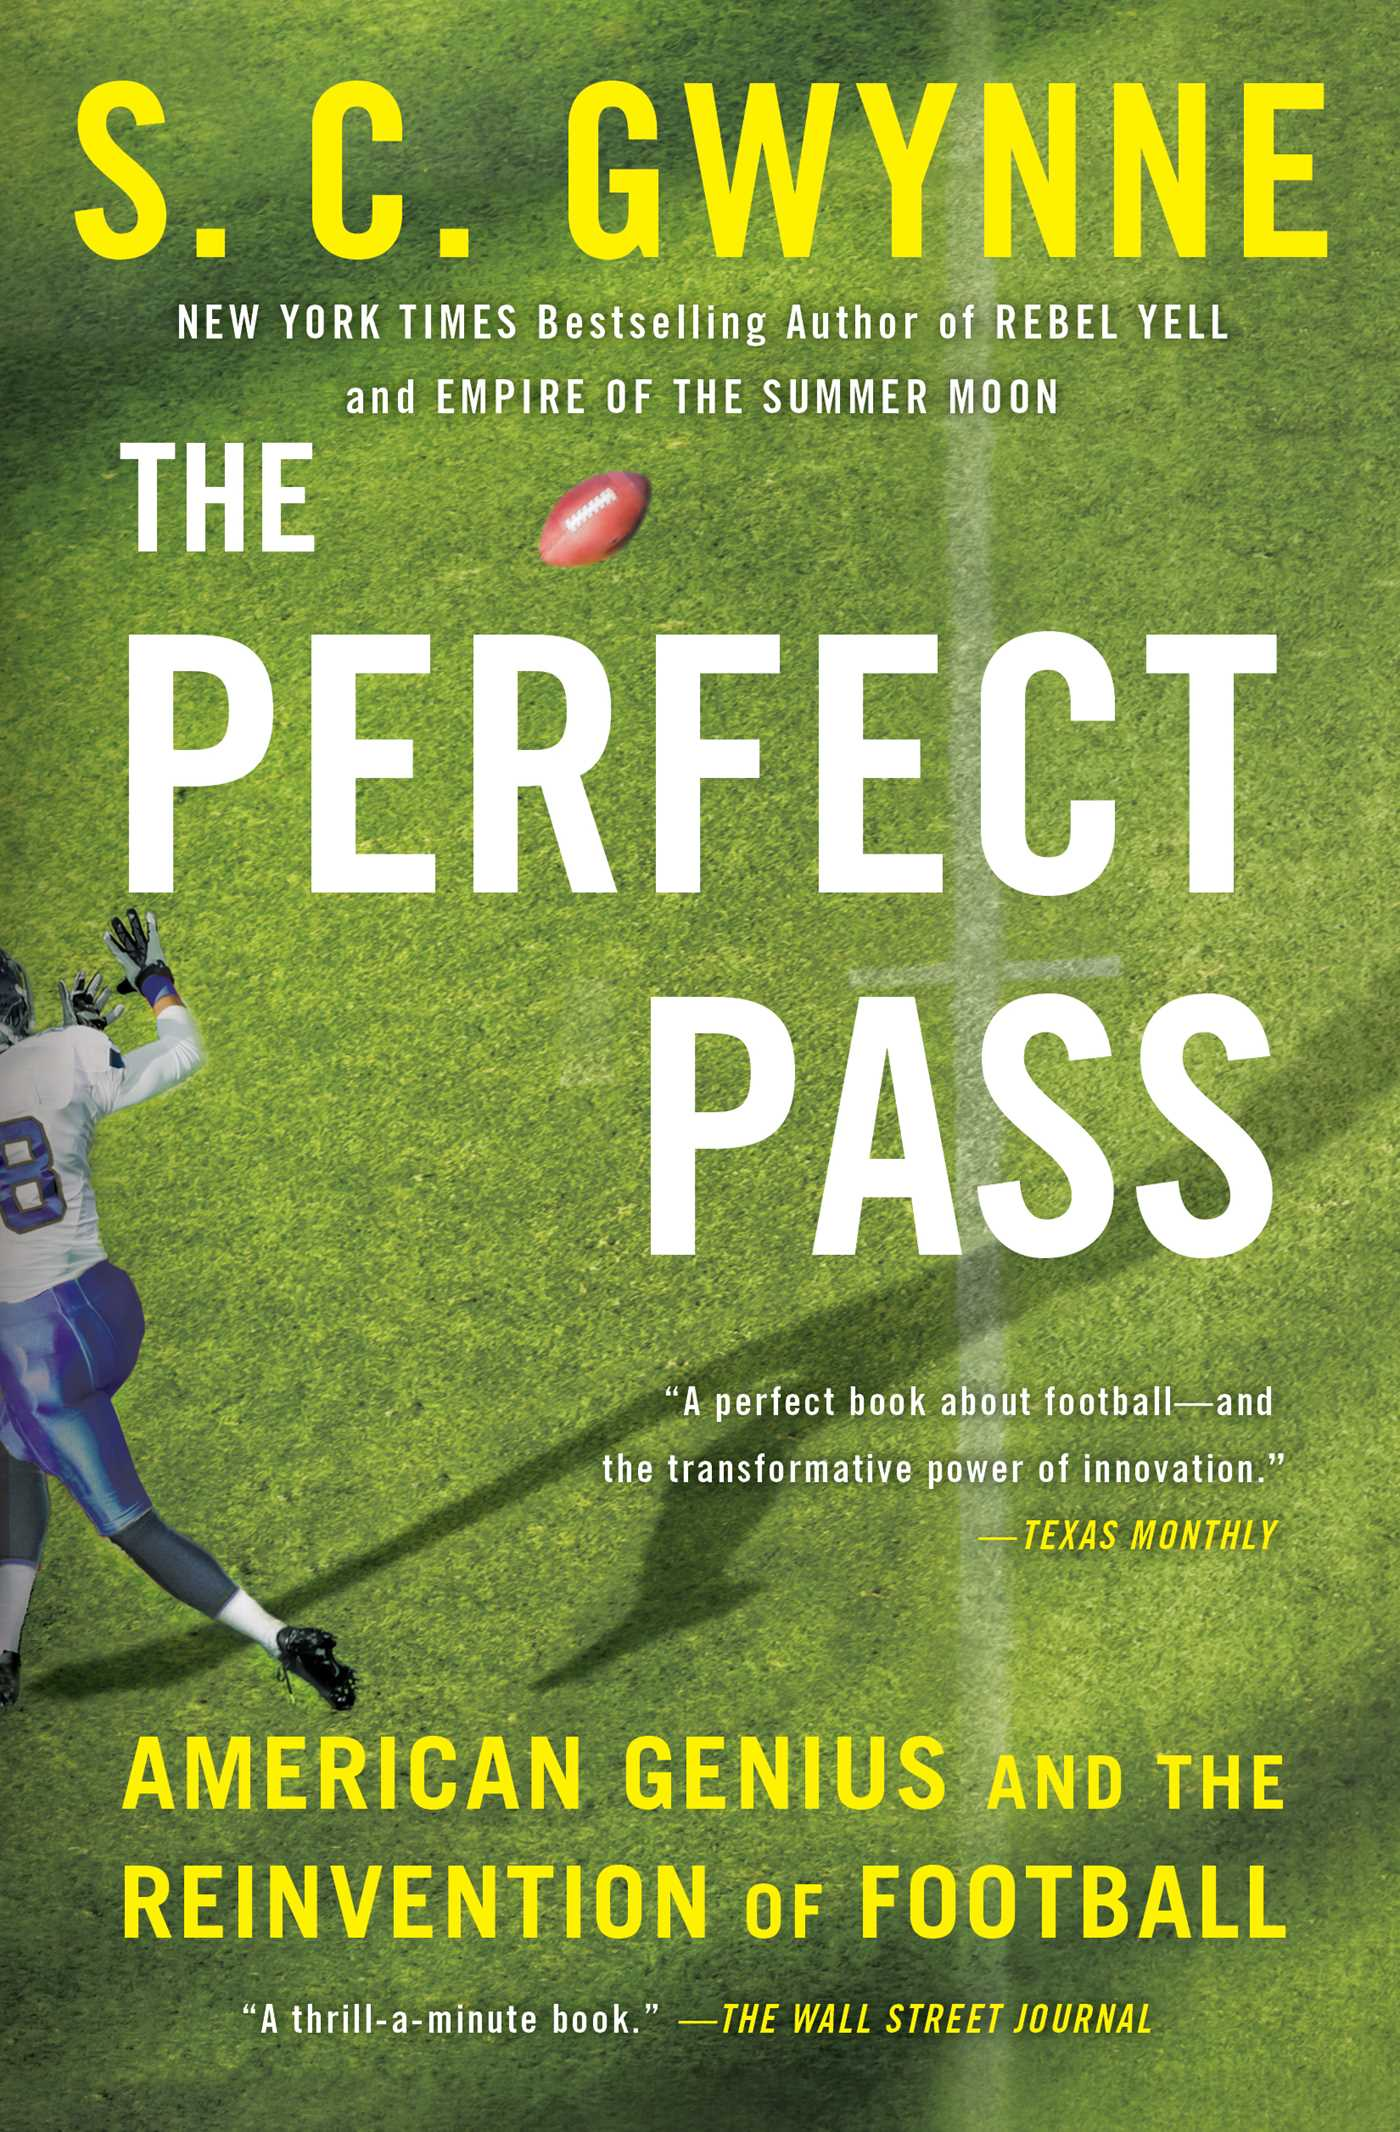 The perfect pass 9781501116209 hr